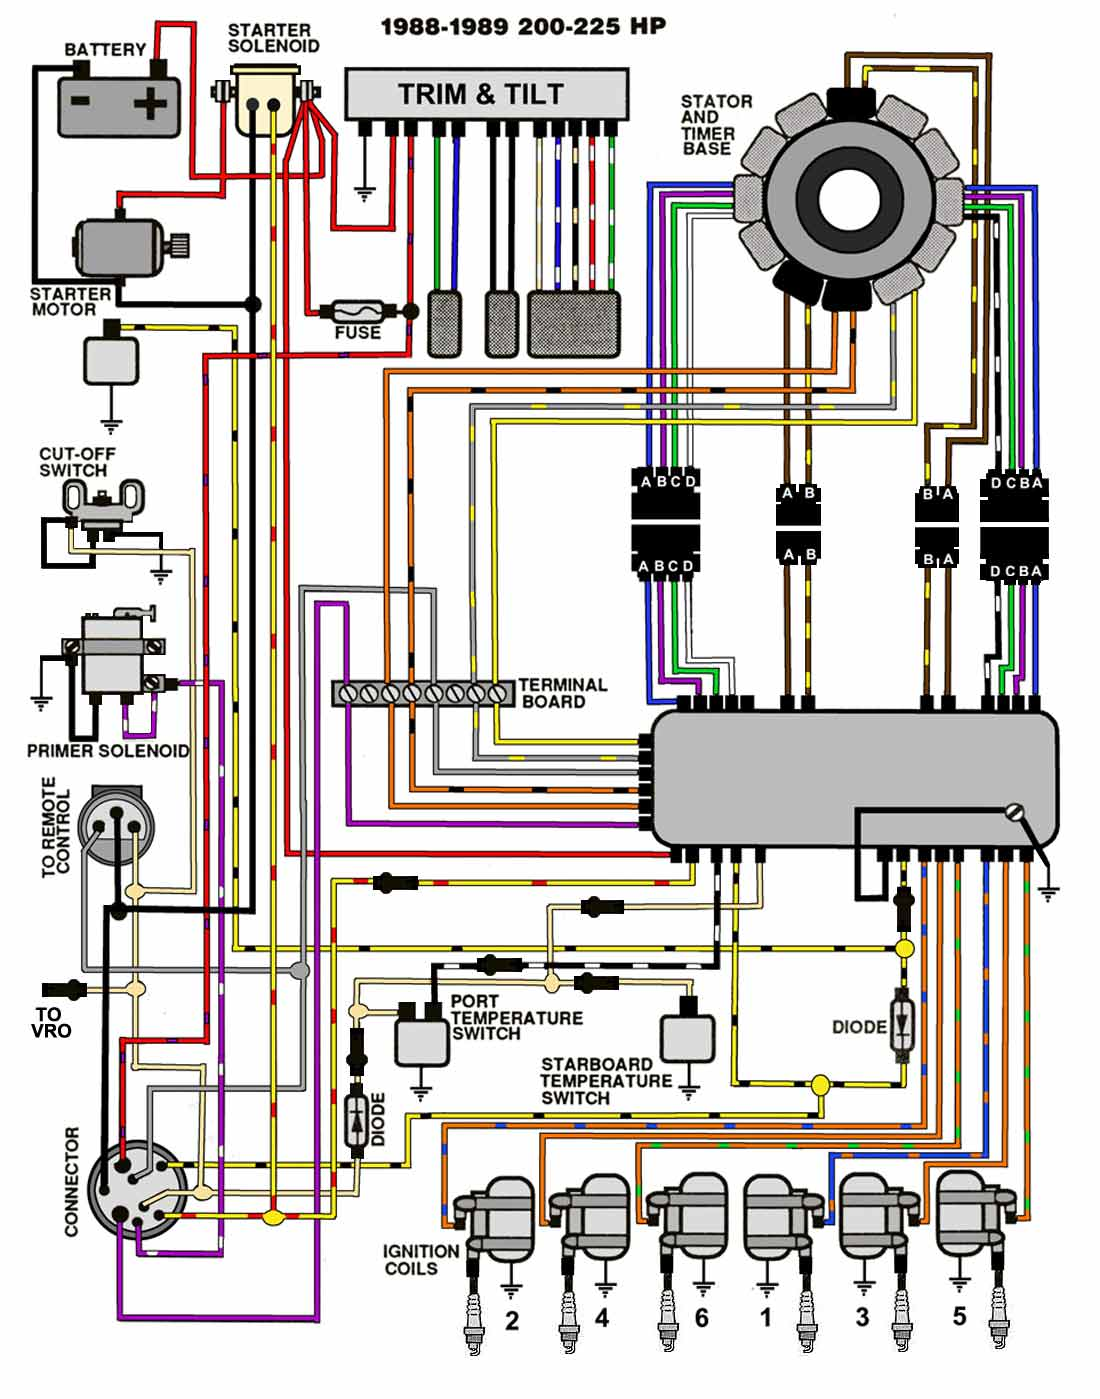 1988_89_200_225 johnson outboard wiring diagram johnson wiring diagrams collection  at mifinder.co